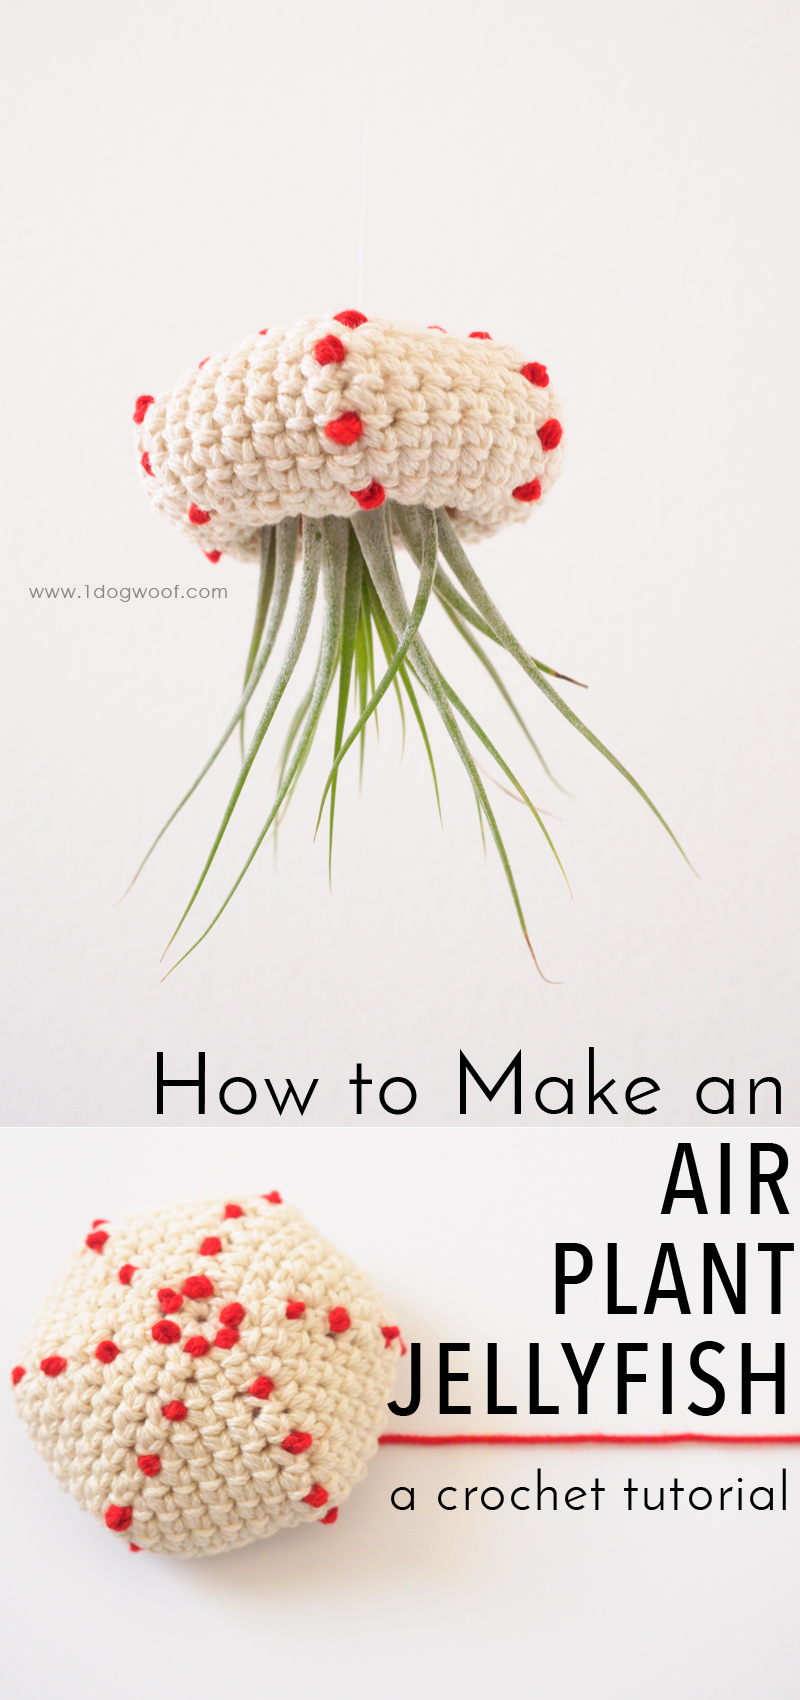 How to Make a Crochet Air Plant Jellyfish. Makes for an adorable bit of decor! Free pattern + tutorial at www.1dogwoof.com